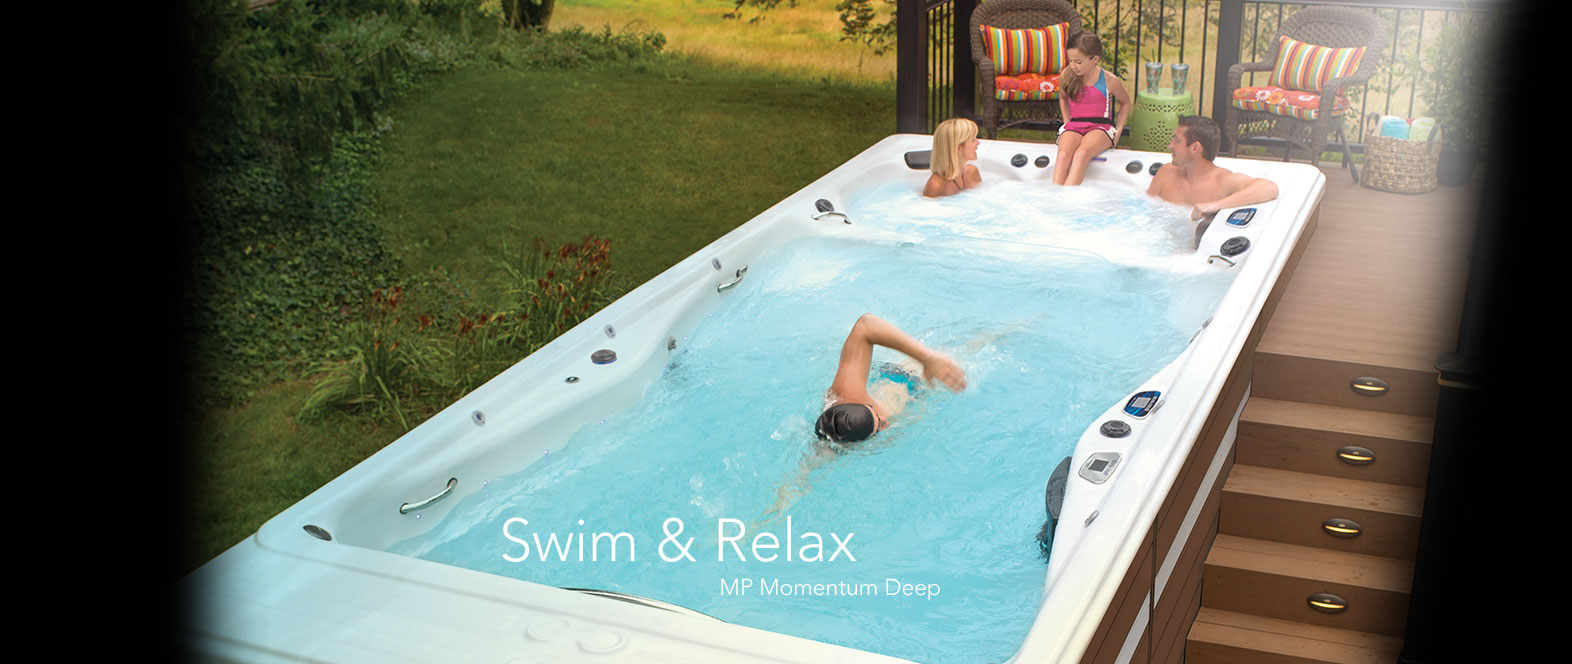 Swim & Relax in a MP Momentum Deep